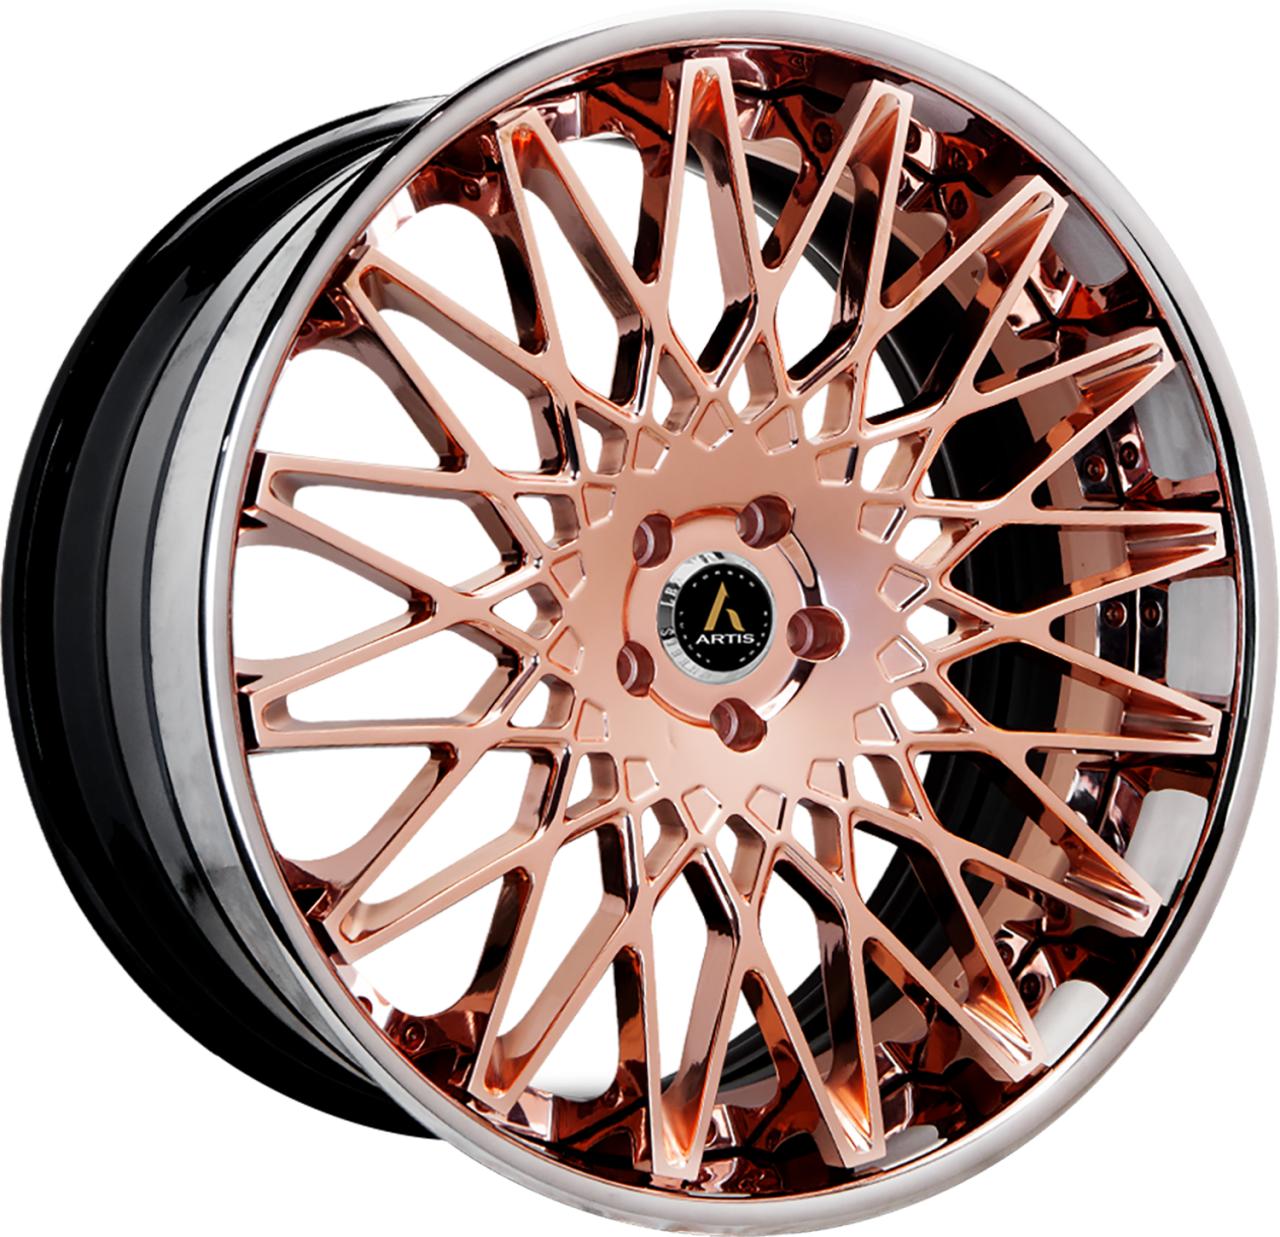 Artis Forged Monza wheel with Custom Rose Gold finish